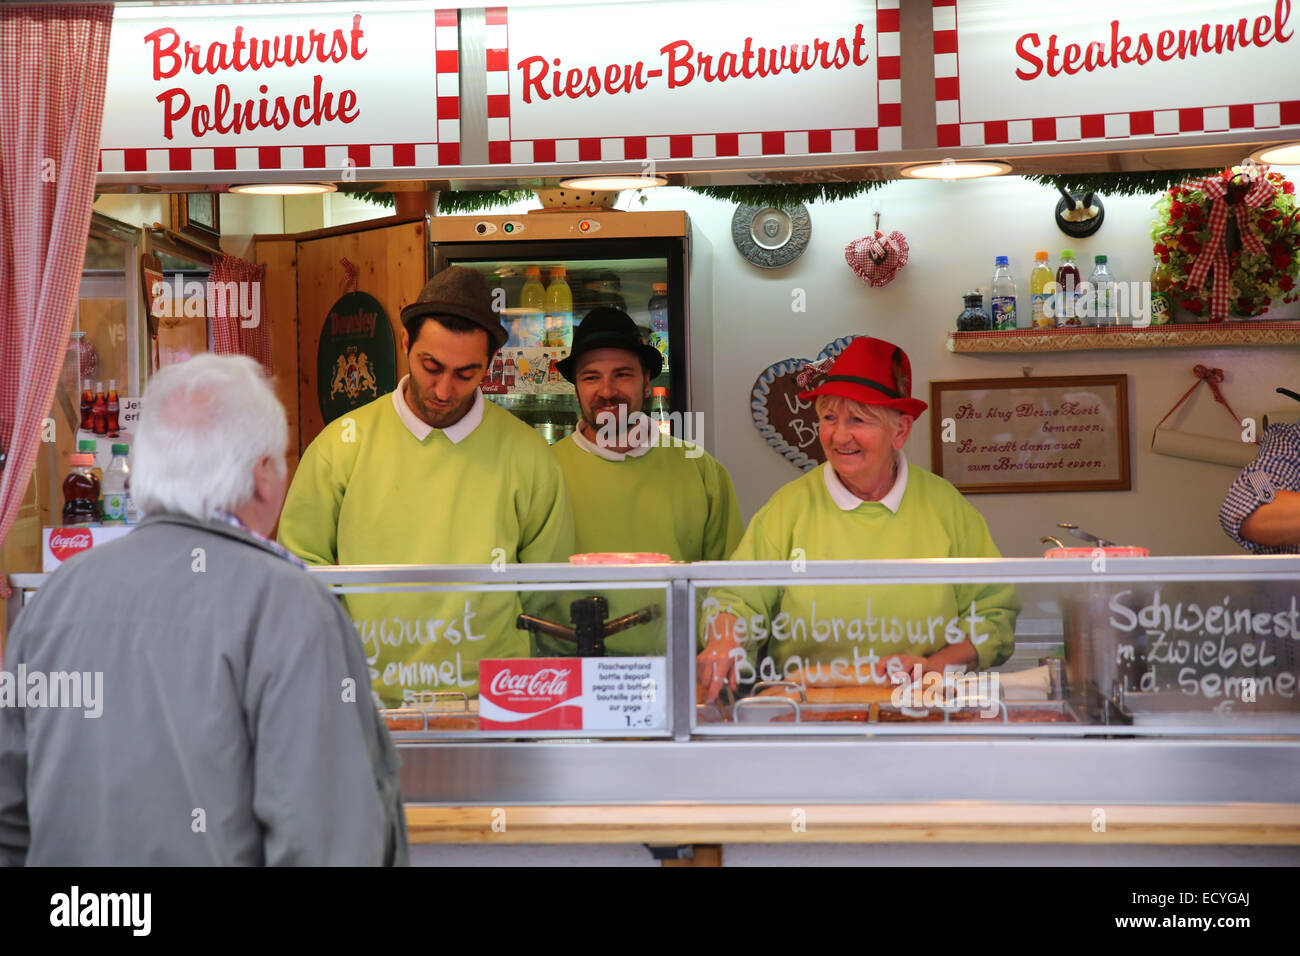 bratwurst german sausage vendor Oktoberfest festival munich germany Stock Photo